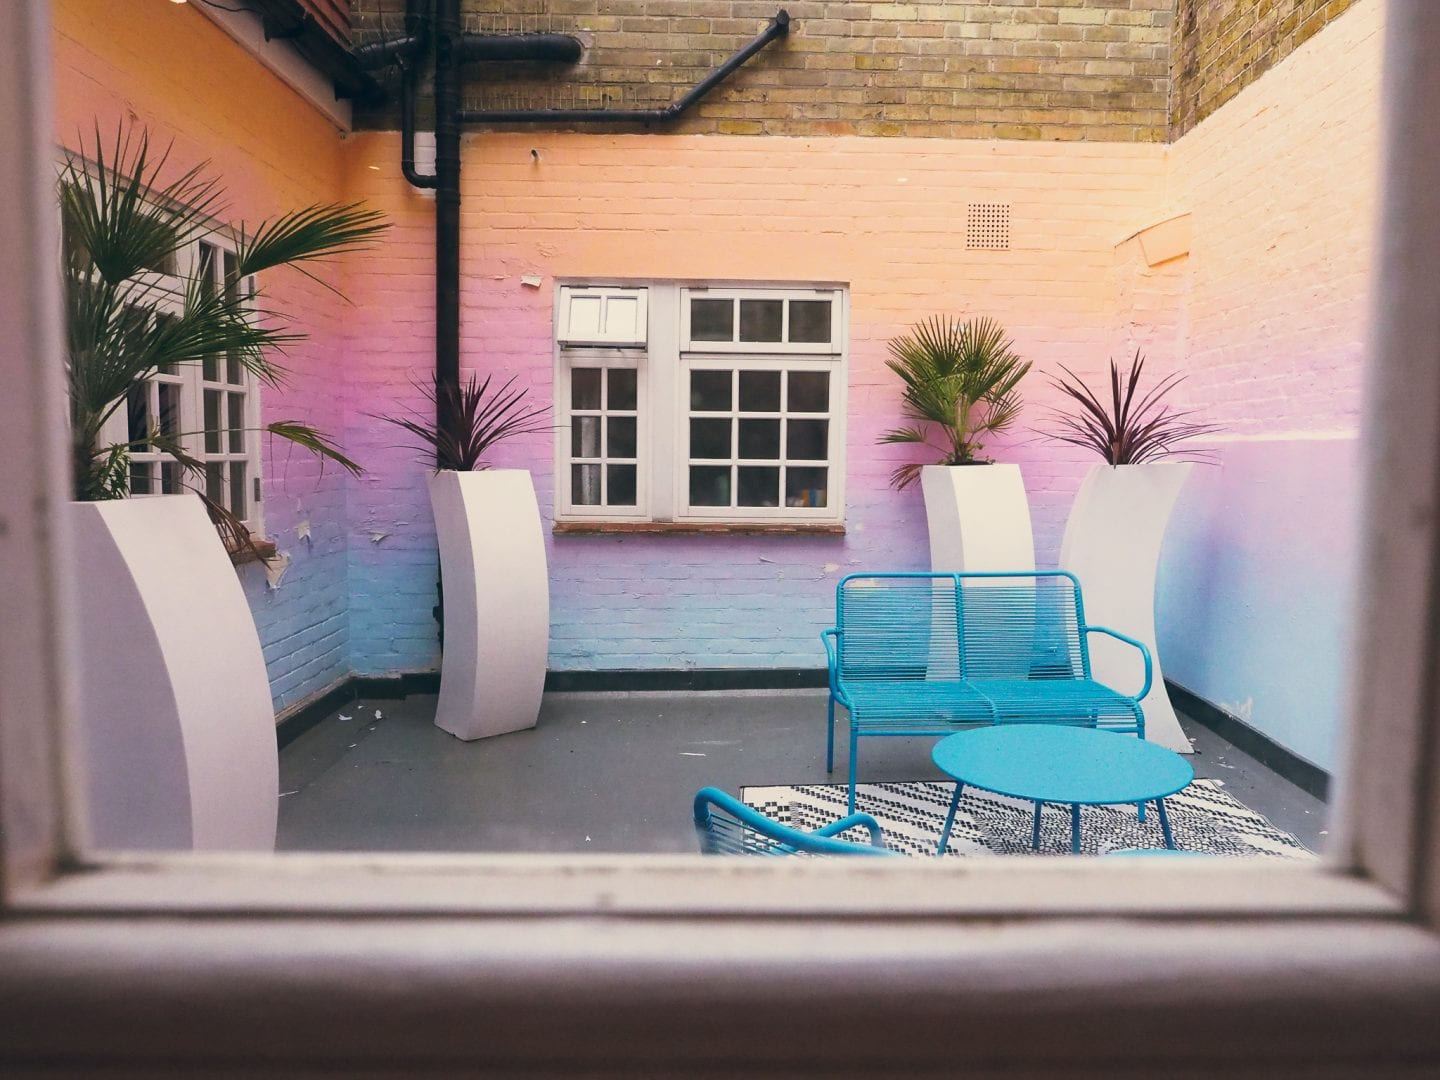 Margate-suites-hotel-airbnb-holiday-cottage-seashell-bedroom-bed-ombre-terrace-area